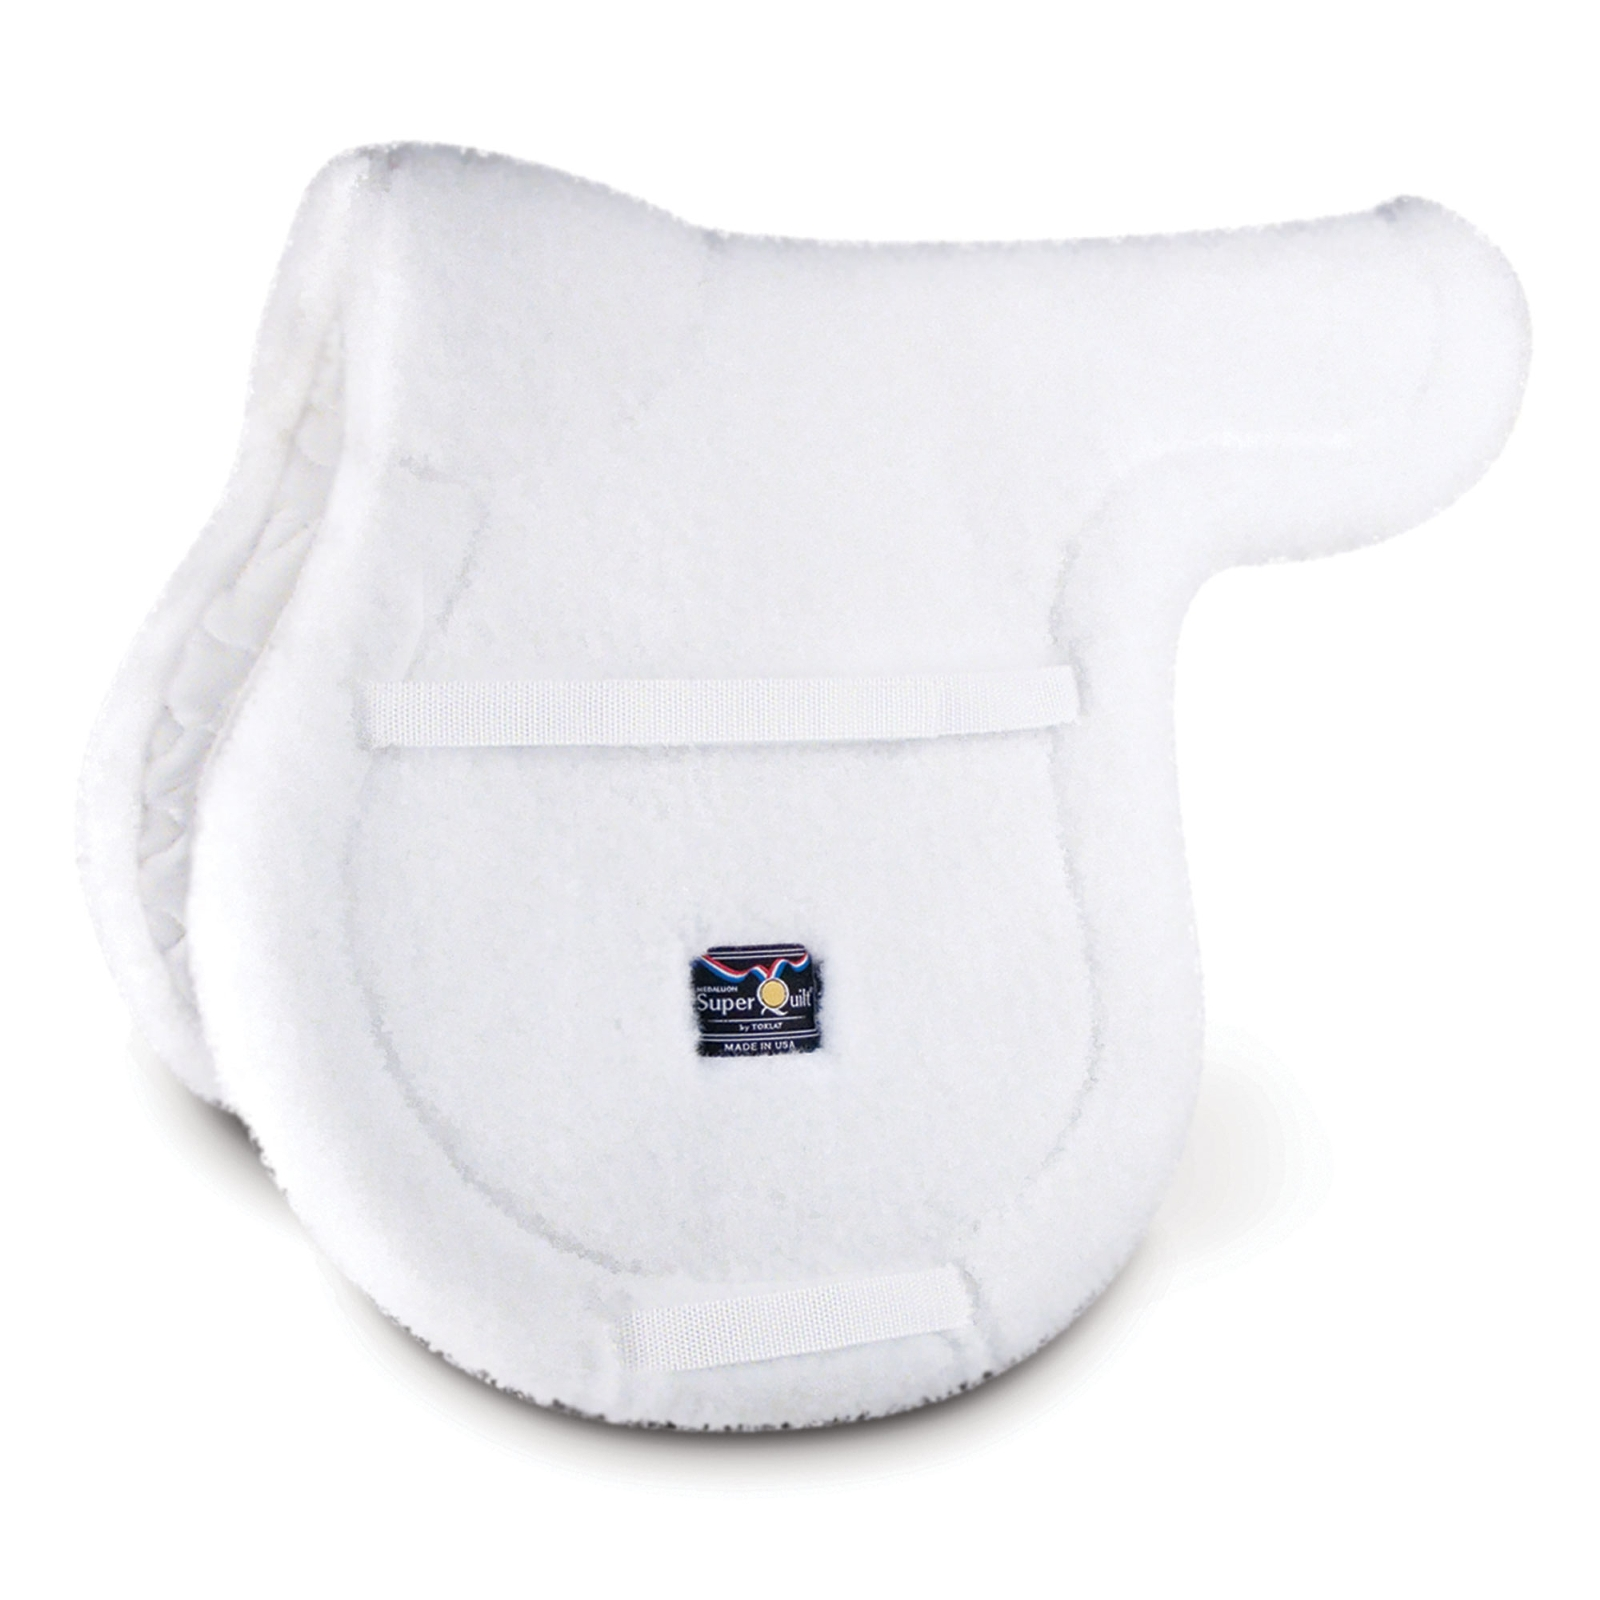 Toklat SuperQuilt Child's High Profile Close Contact Pad